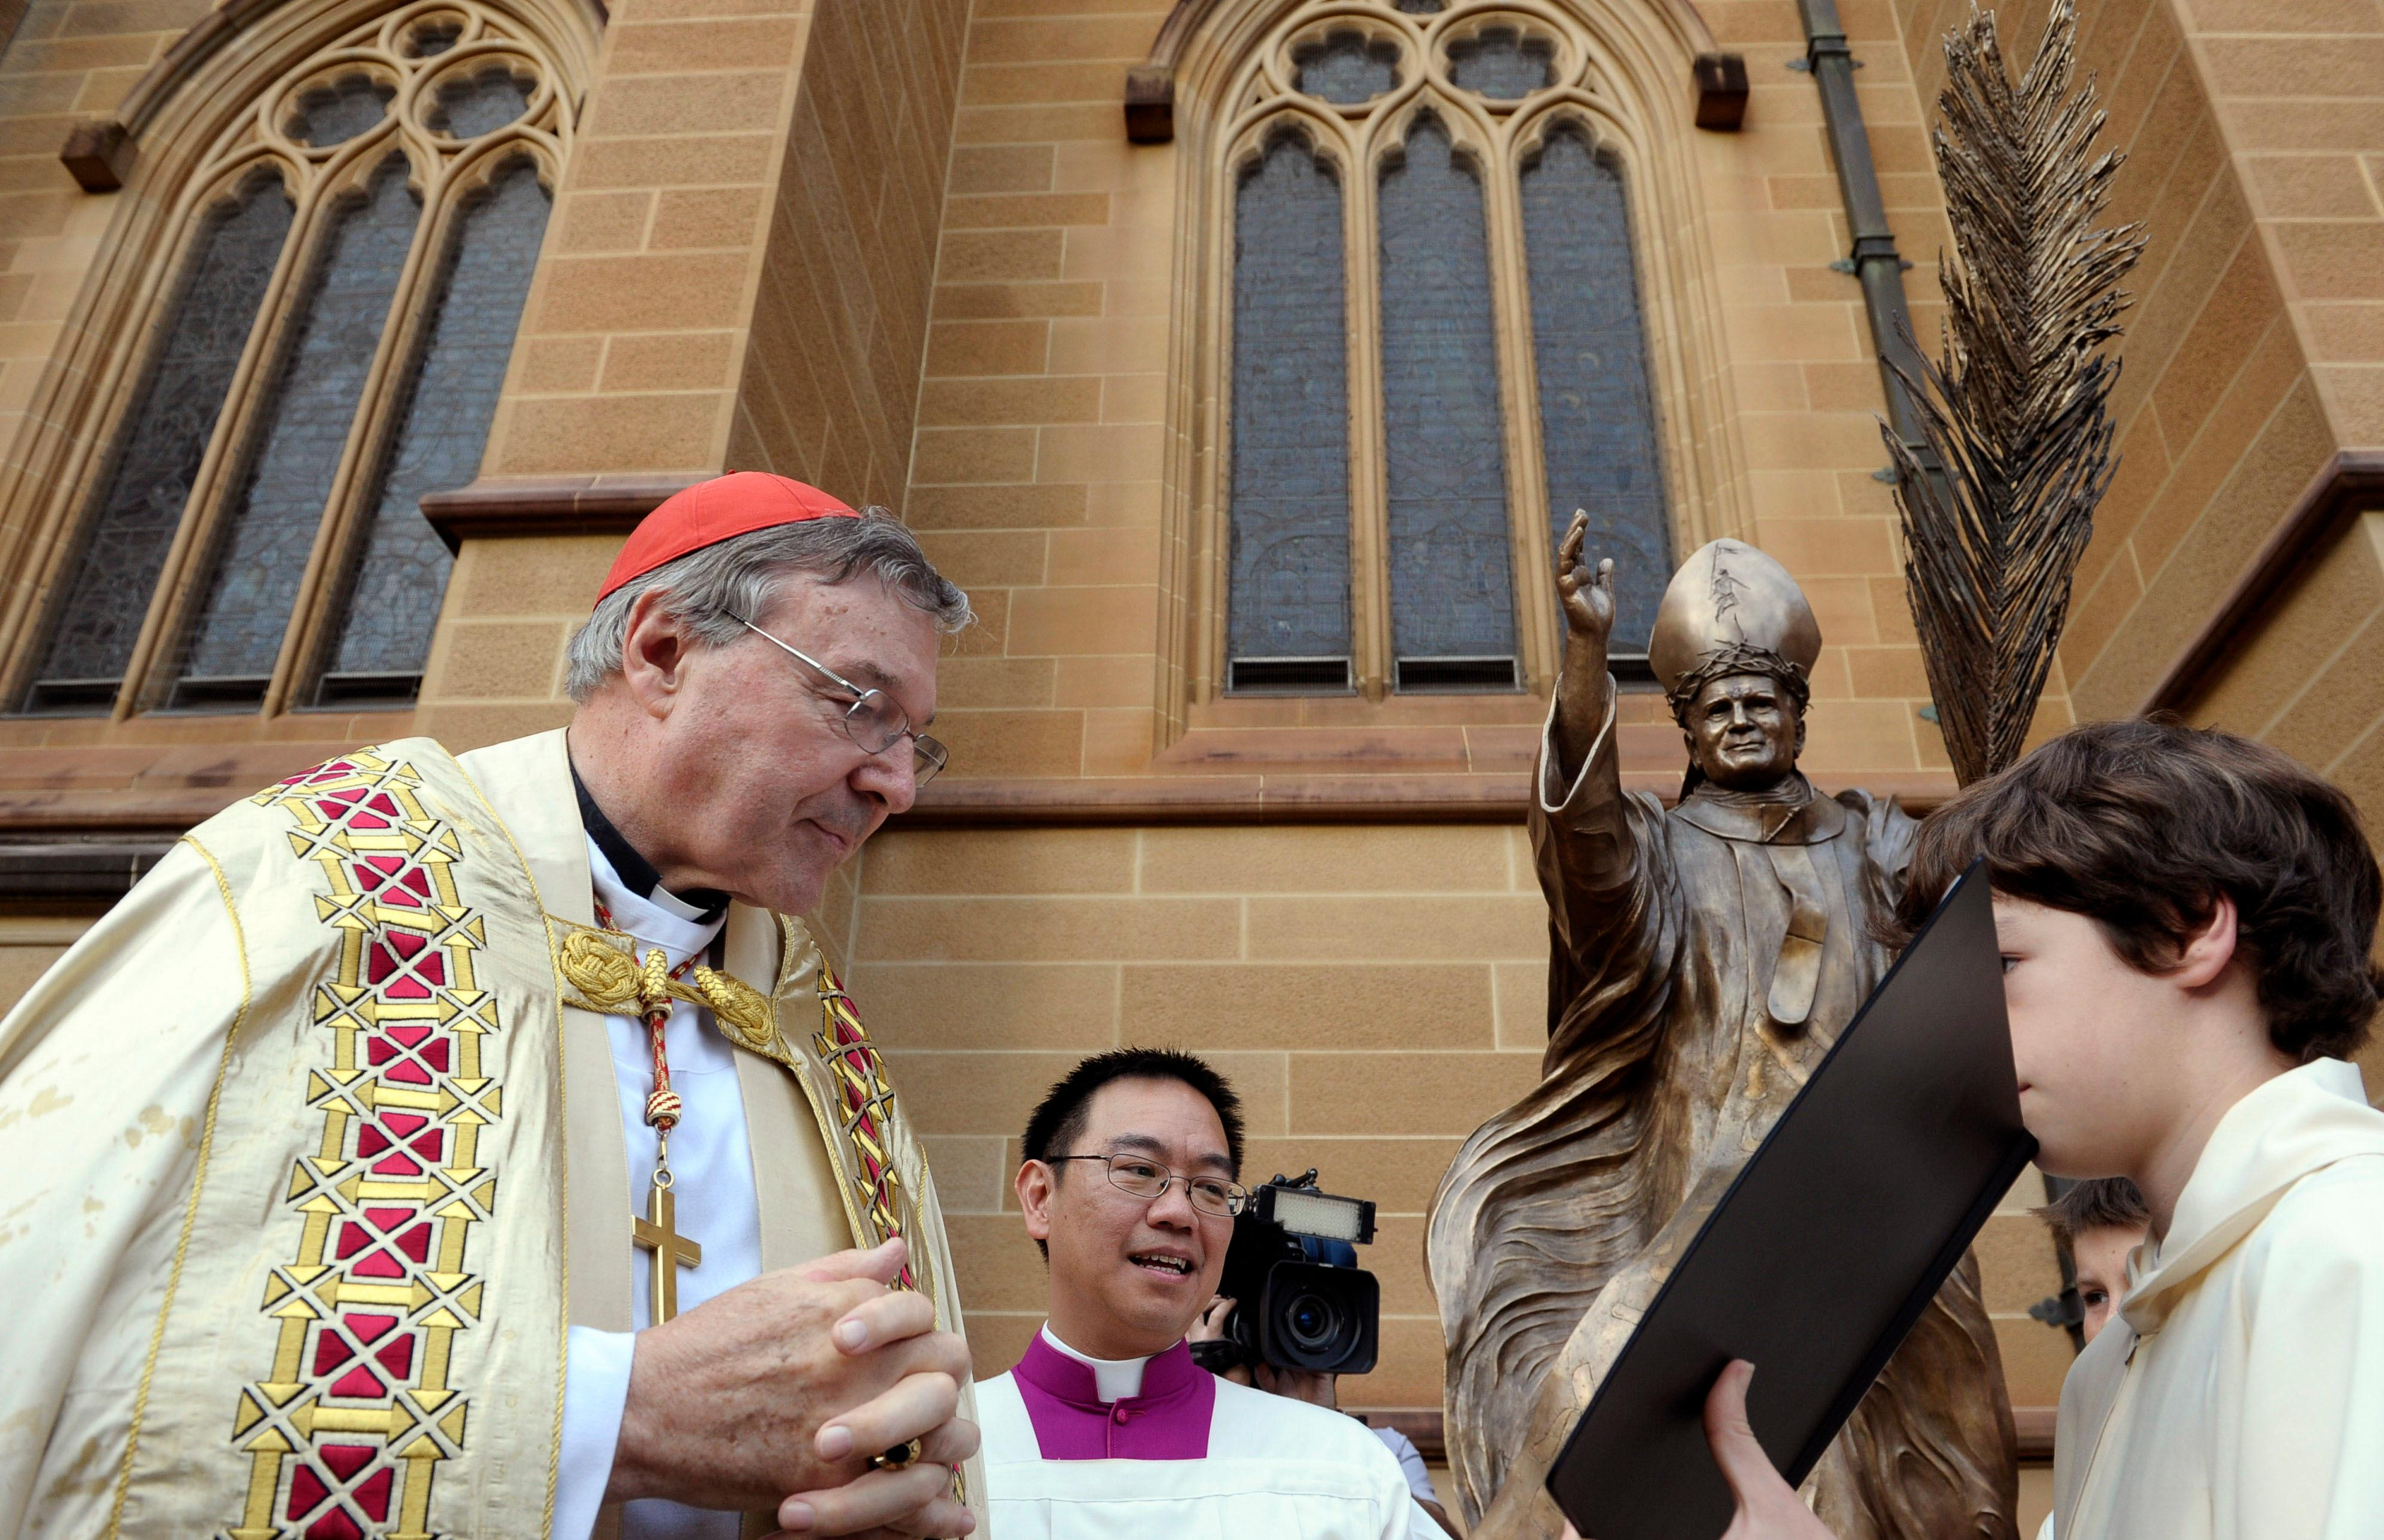 FILE - In this May 1, 2011 file photo, Cardinal George Pell, left, reads a bible during the blessing of a statue of John Paul ll at St Mary's Cathedral in Sydney, Australia. Australian police say they are charging Pell with historical sexual assault offenses. (AP Photo/Rob Griffith, File)